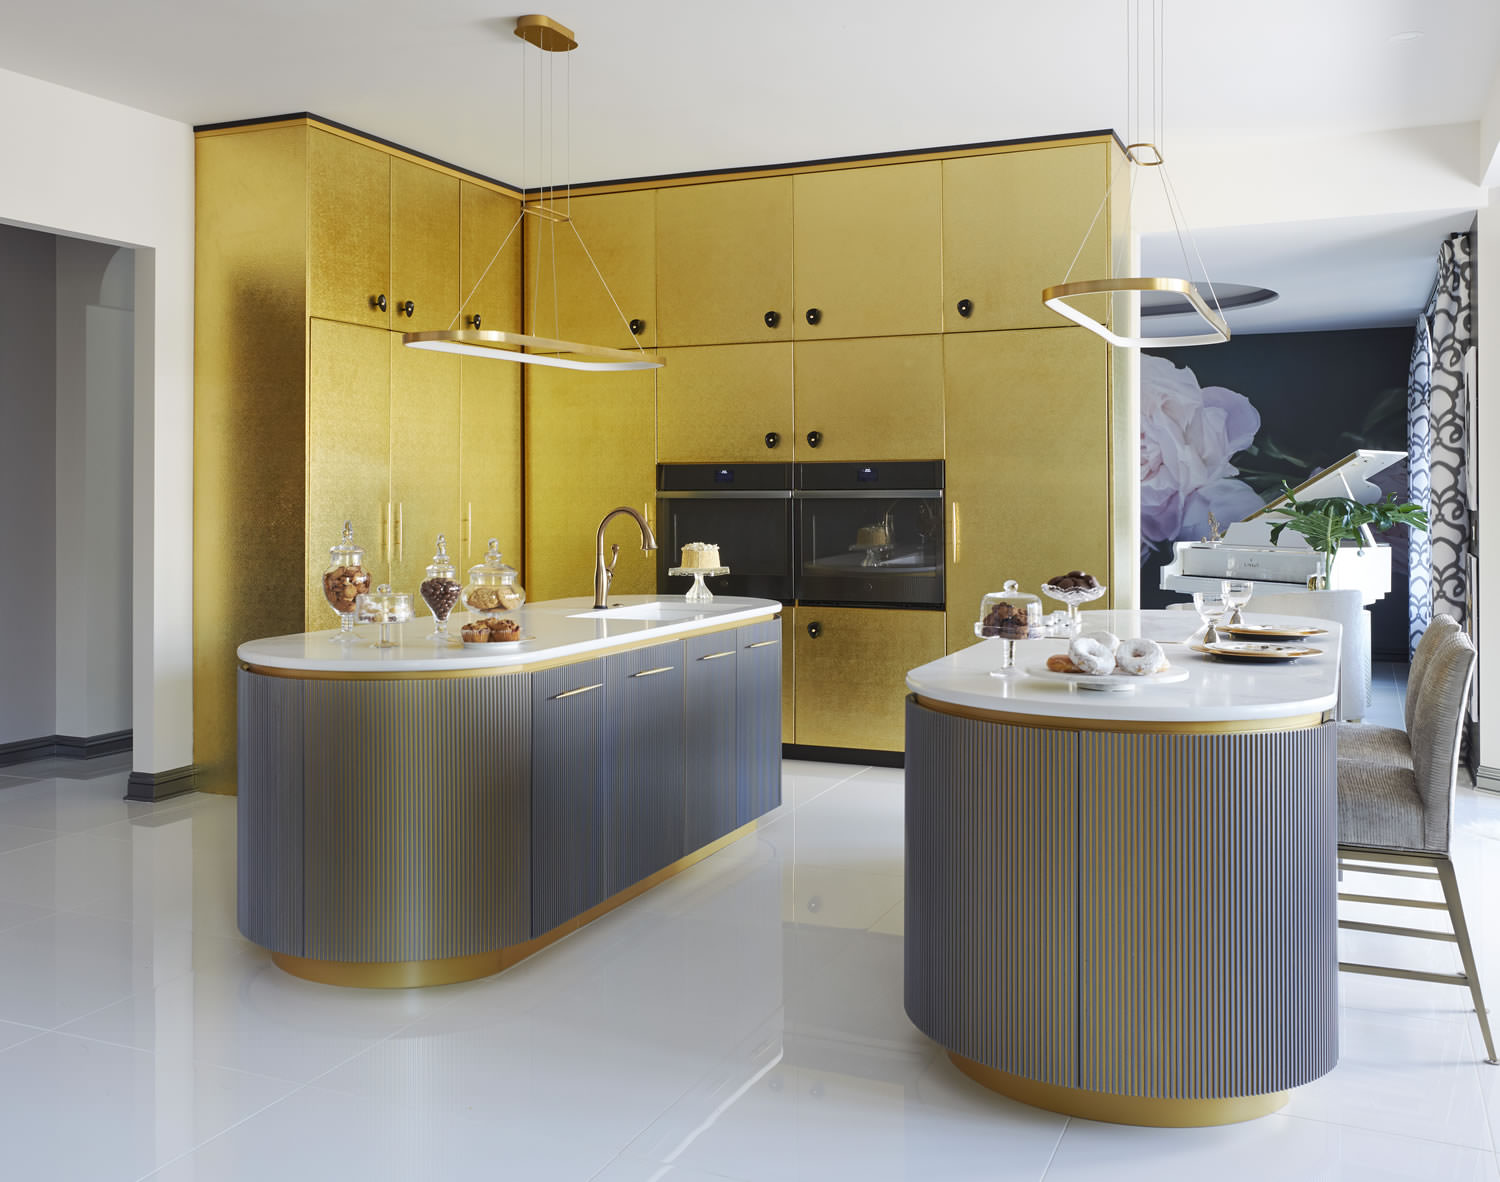 STYLISH AND FUNCTIONAL KITCHENS